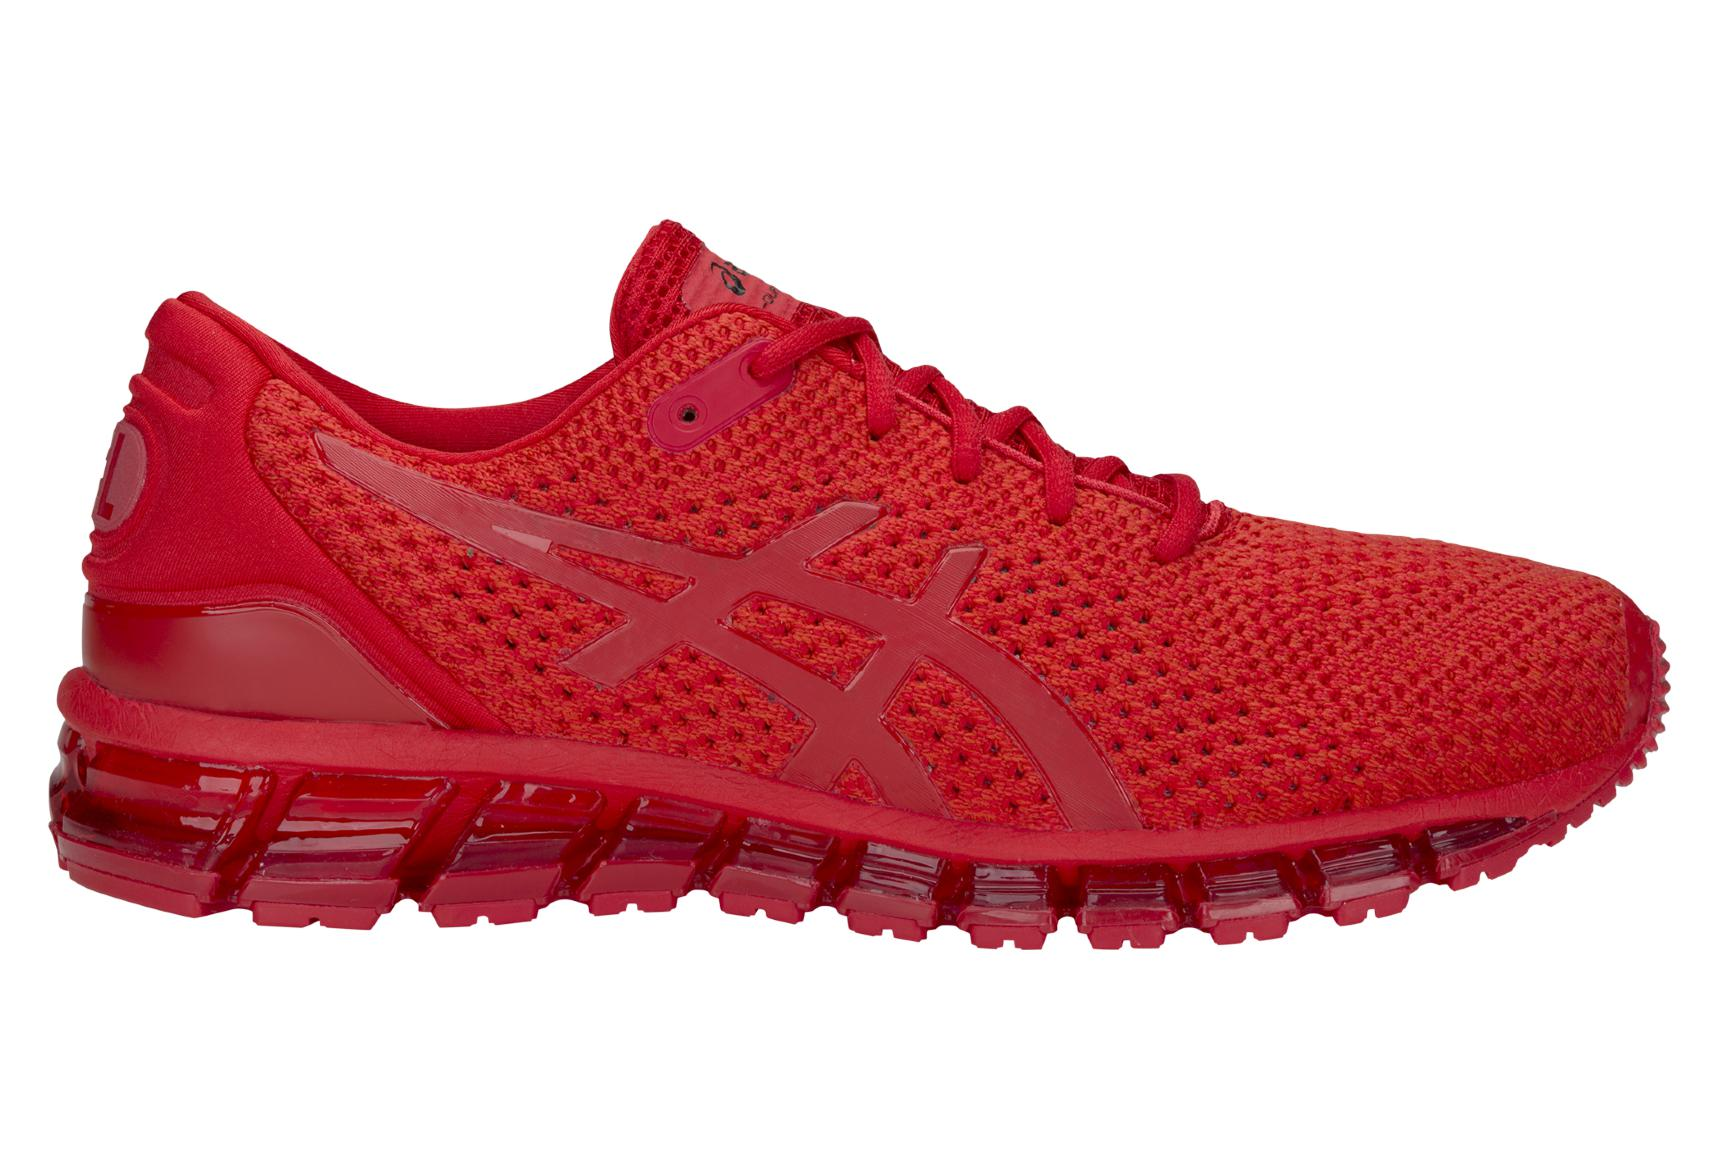 Asics Shoes Run Gel Quantum 360 Knit 2 Red Men